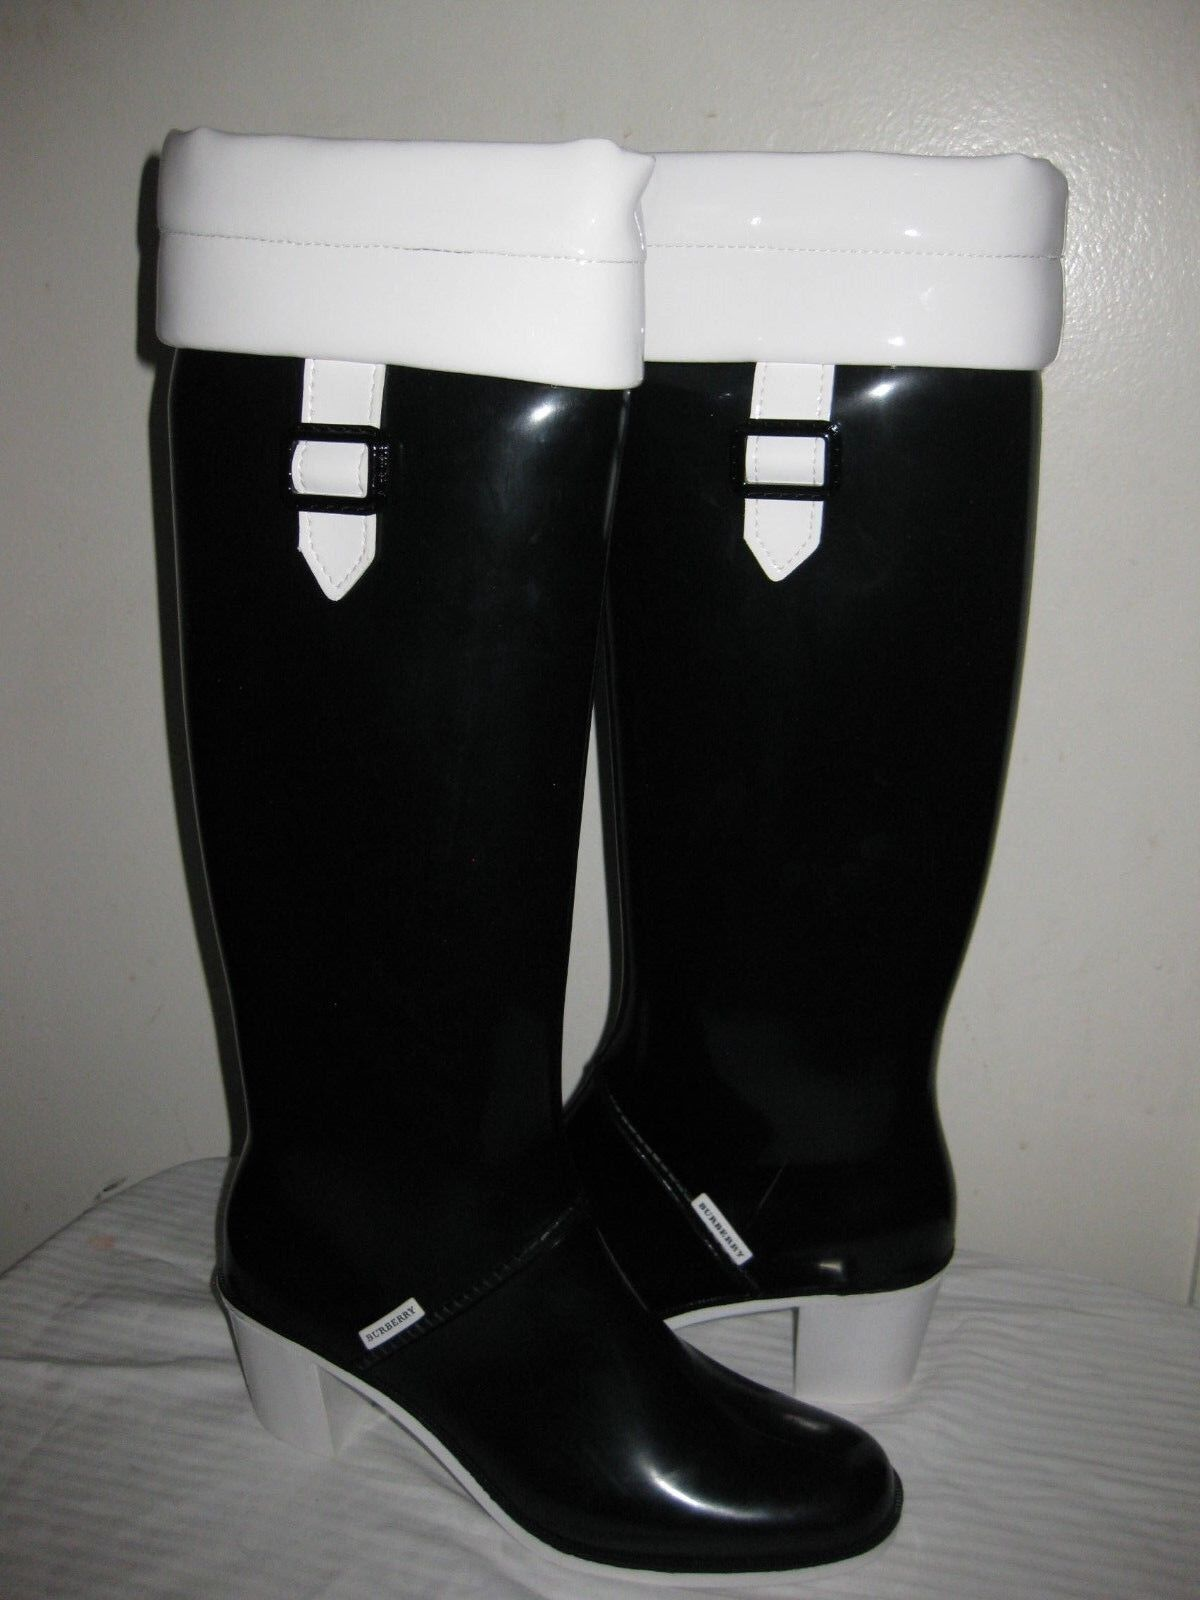 Burberry Tall Rain Stiefel Größe EUR 40, US 9 Made In ITALY.